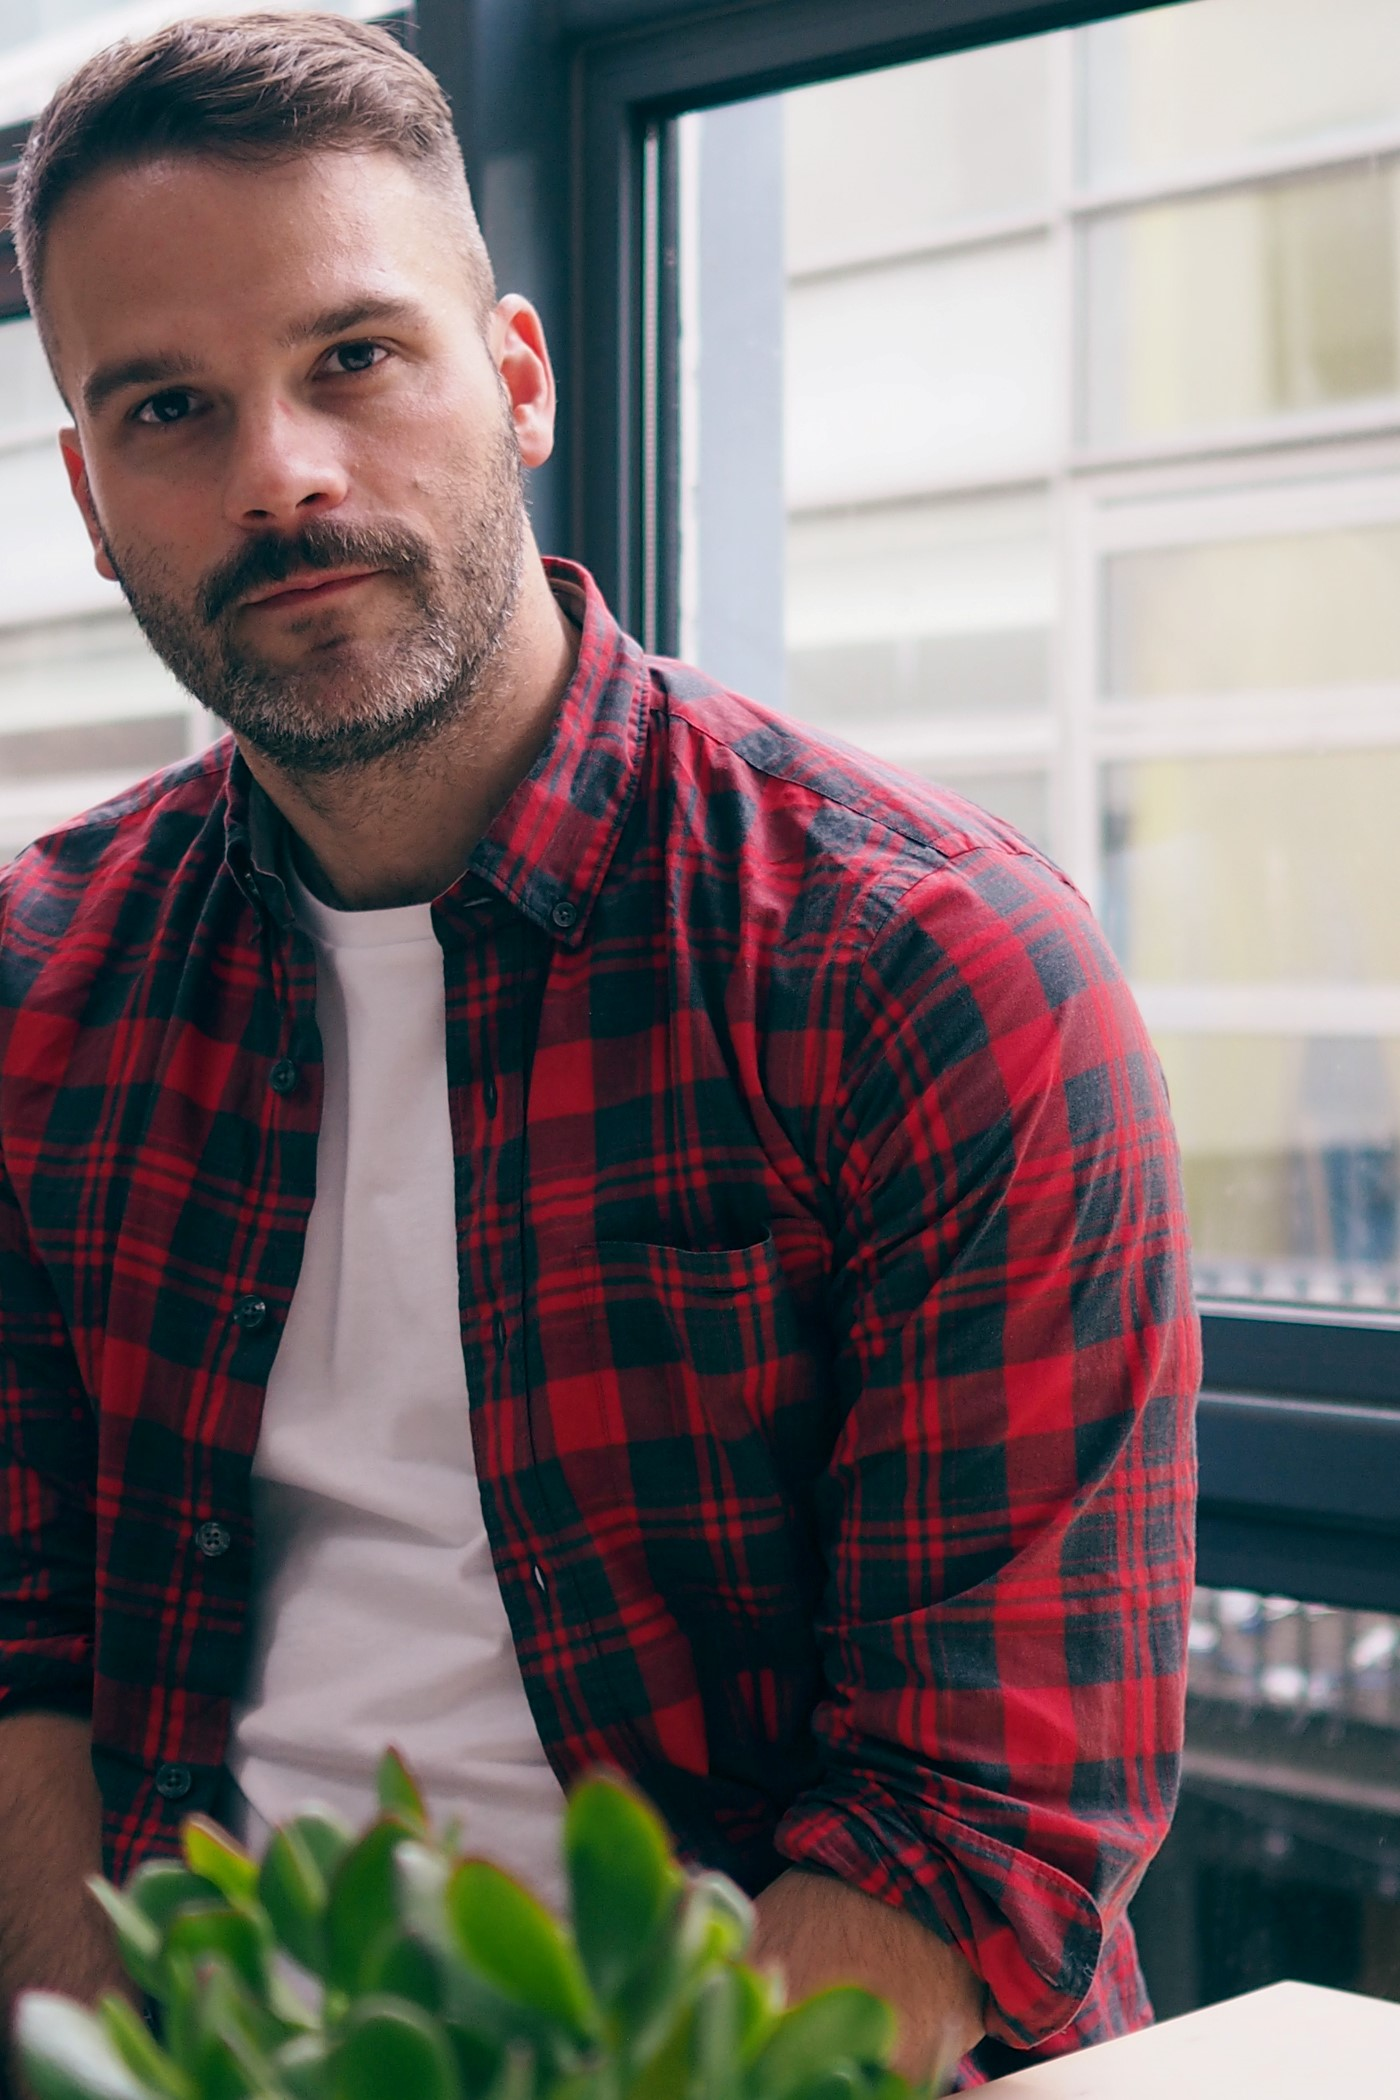 Lift Appoints Nelson As Artistic Director And Joint Ceo